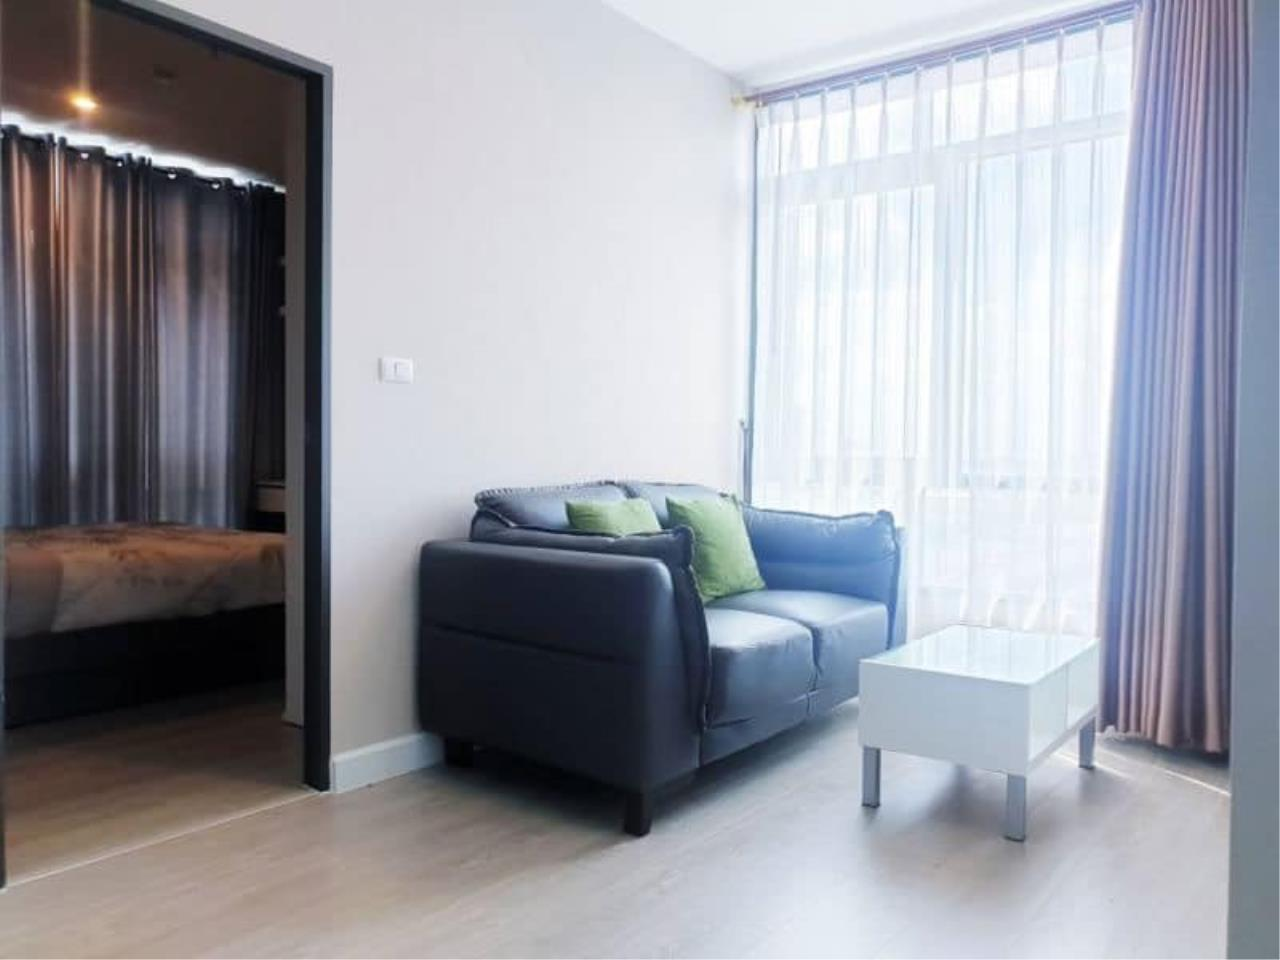 Agent Thawanrat Agency's Condo for rental Metro Sky Bangsue-Prachachuen Near BTS.Bang Son 1 bedroom,1 bathroom. size 36 sqm.Floor 12 th. fully furnished Ready to move in 3